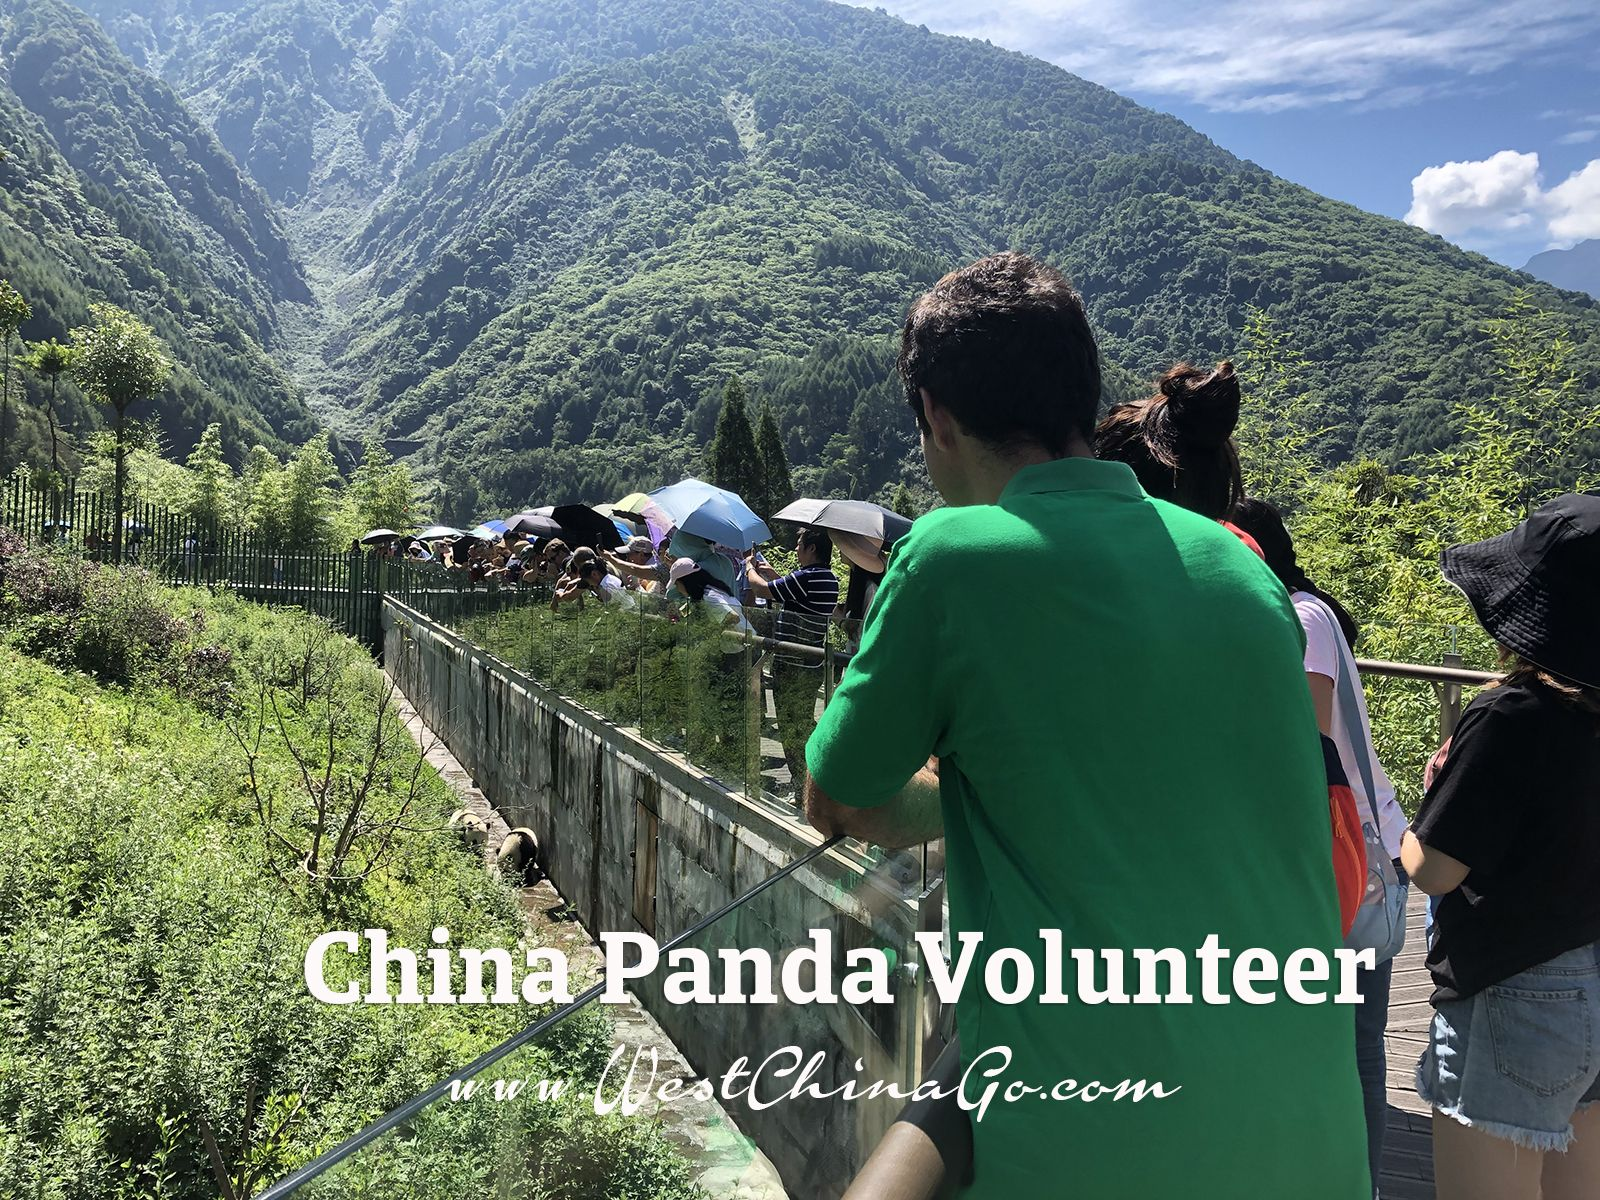 china panda volunteer